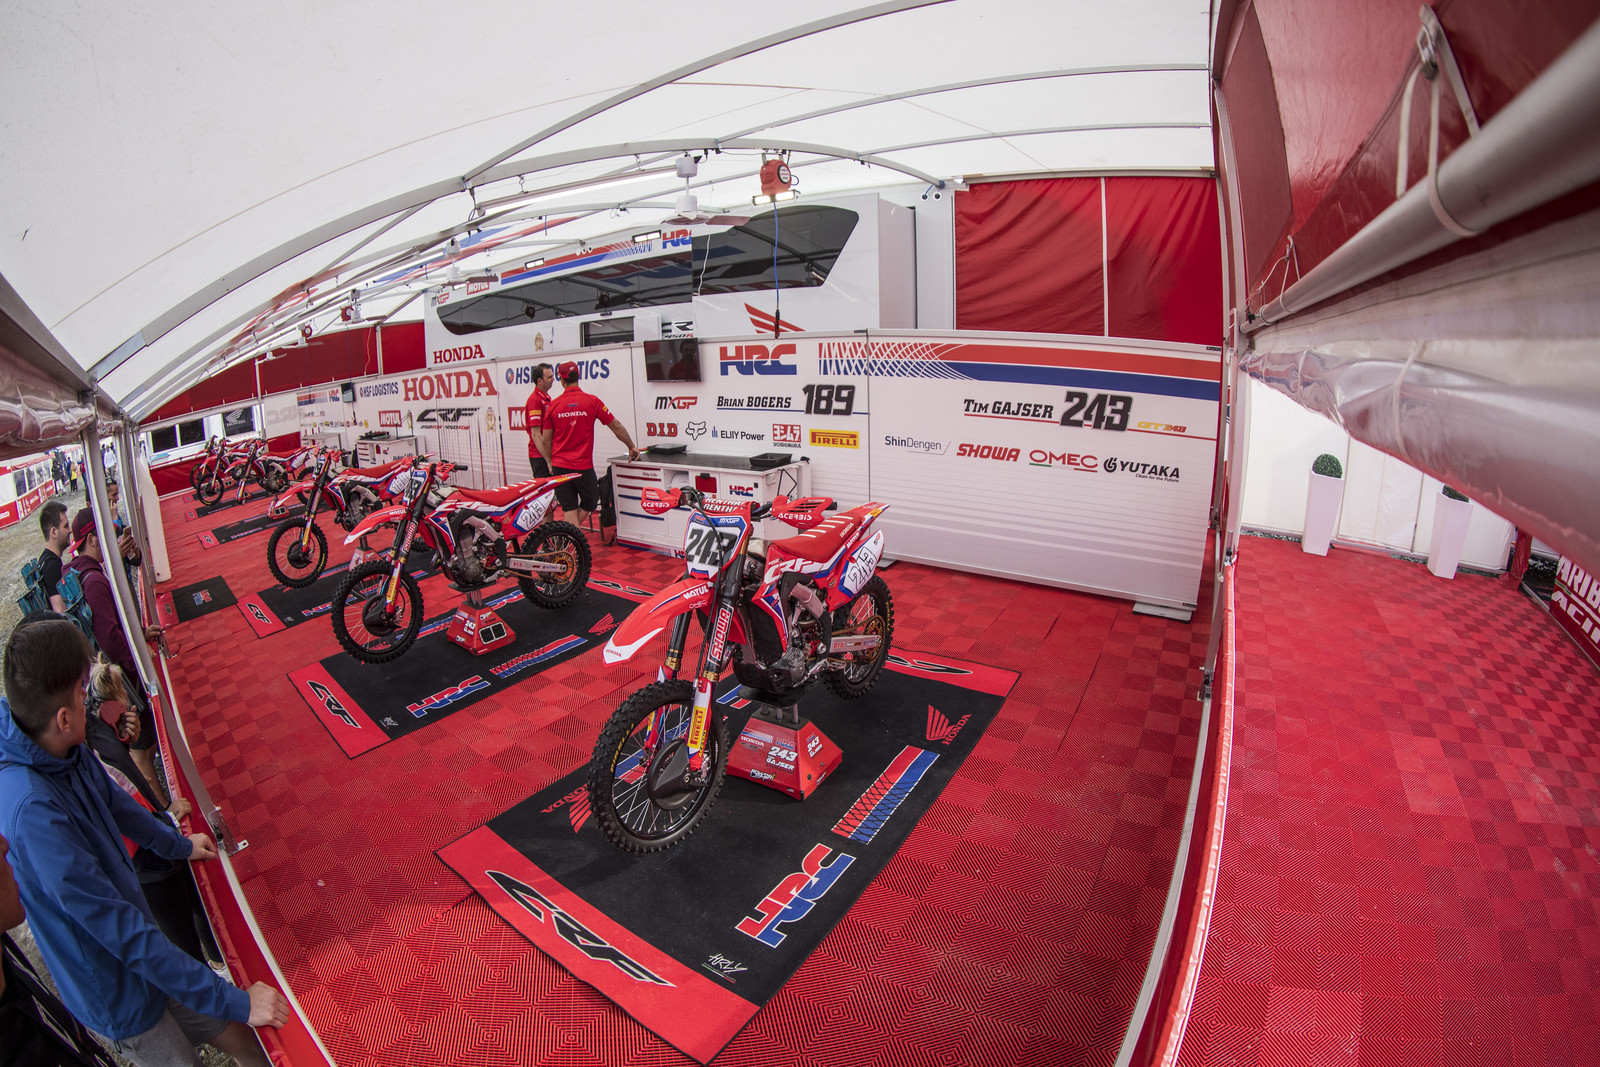 We are going to take a tour of the pro pits, starting with Honda HRC Team.